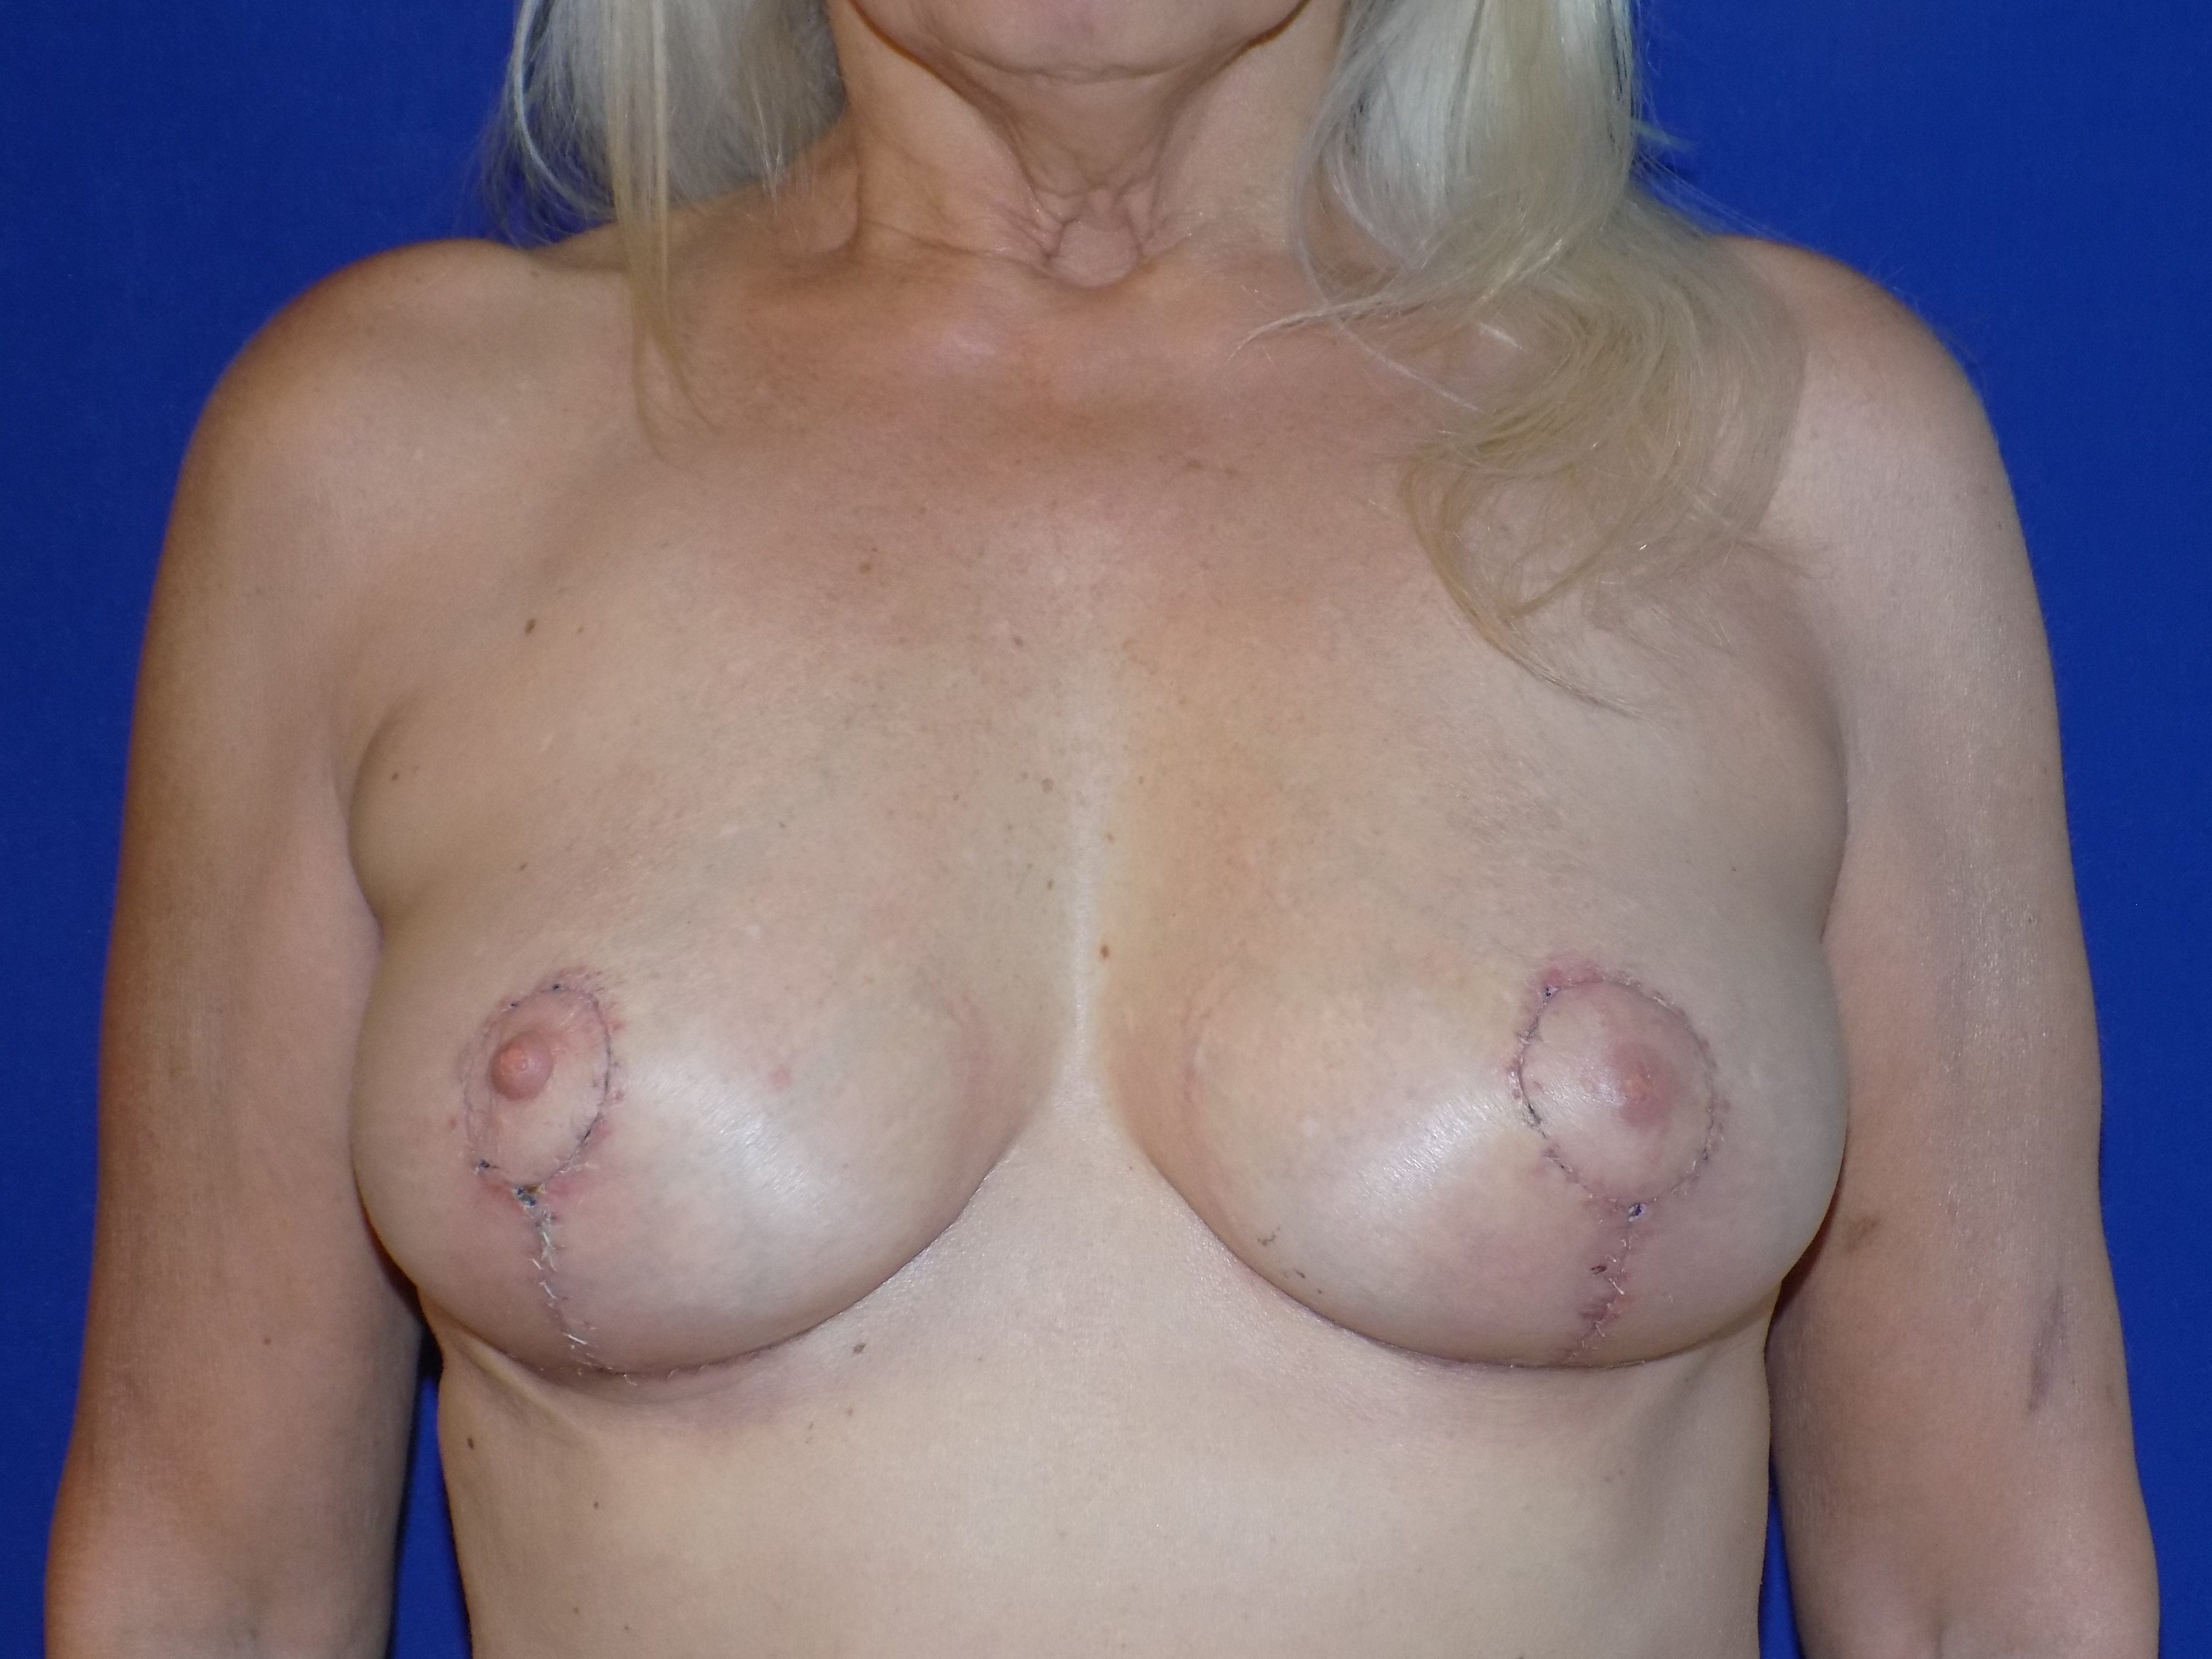 After-This patient no longer wanter breast implants. Breast Implant removal and breast lift by Dr. Perez.